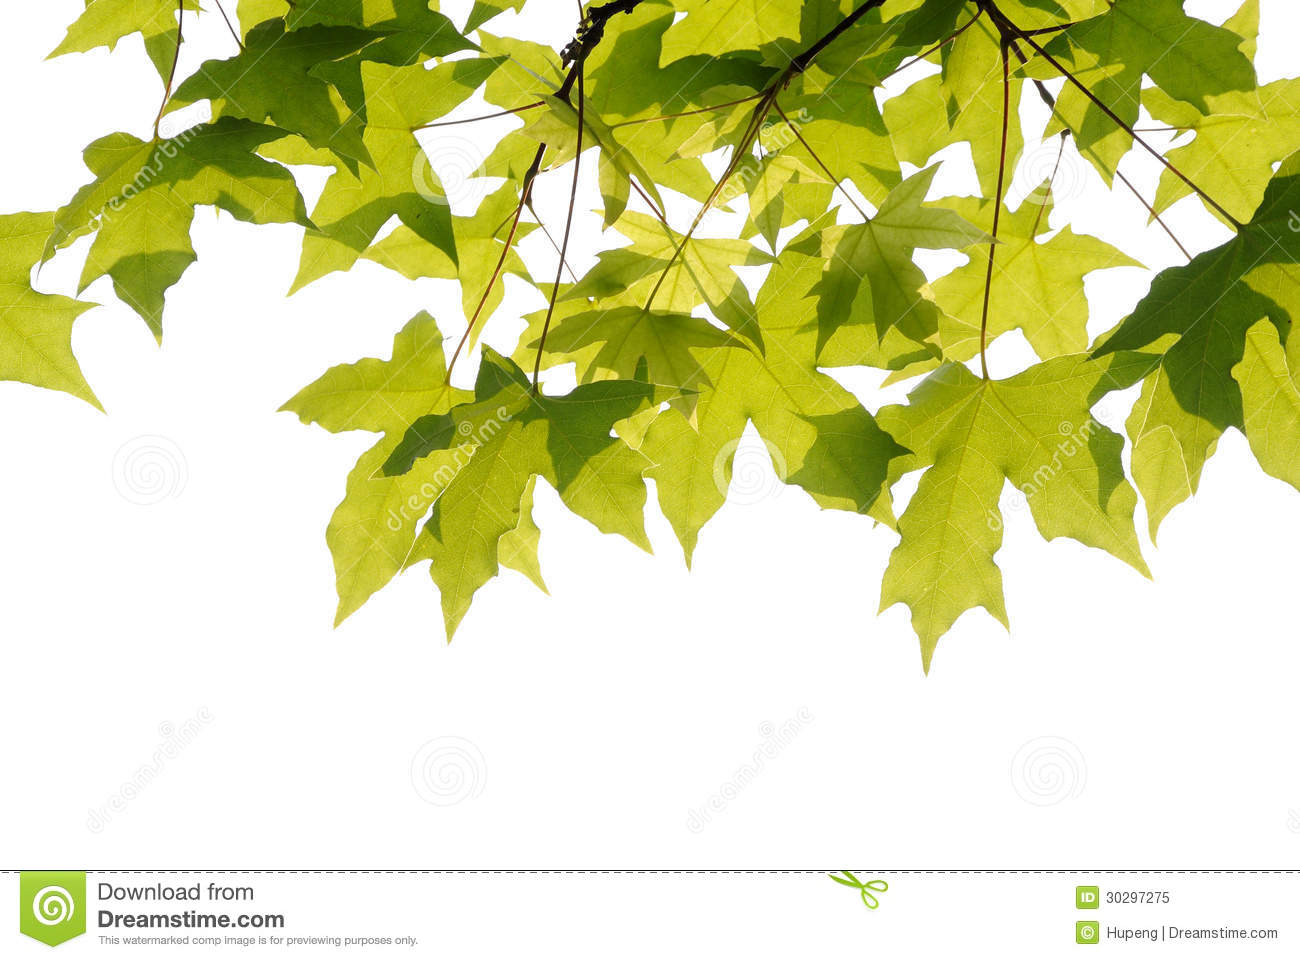 Plane Trees Leaves Royalty Free Stock Photo.